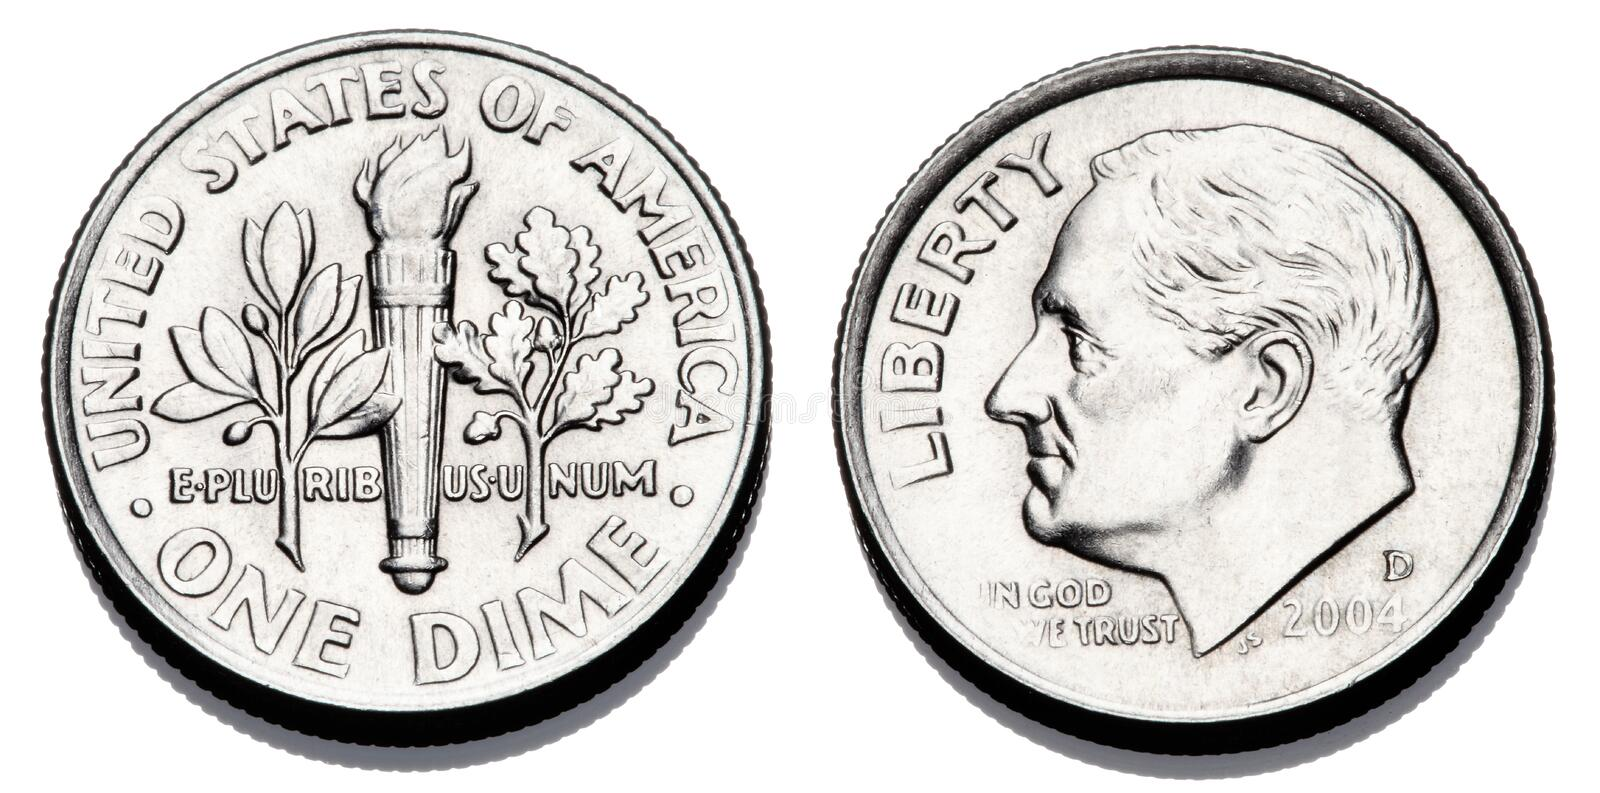 Obverse and reverse of a United States dime. A United States dime, 10 cents, or 1/10 dollar showing the obverse and reverse sides royalty free stock images